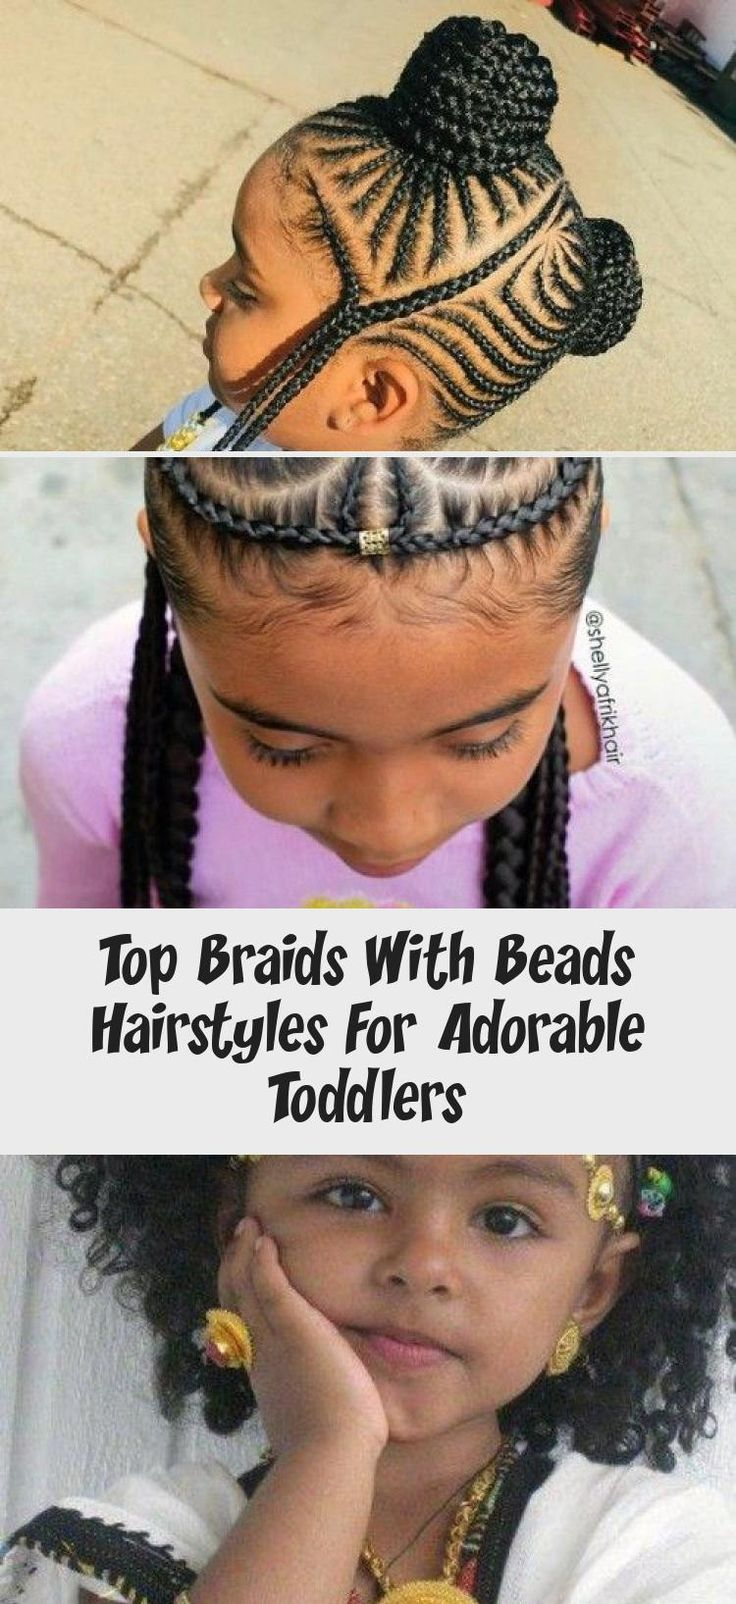 Top Braids with Beads Hairstyles for Adorable Toddlers | New Natural Hairstyles #babyhairstylesForShortHair #babyhairstylesAfricanAmerican #babyhairstylesWithBows #babyhairstylesBun #babyhairstylesIllustration